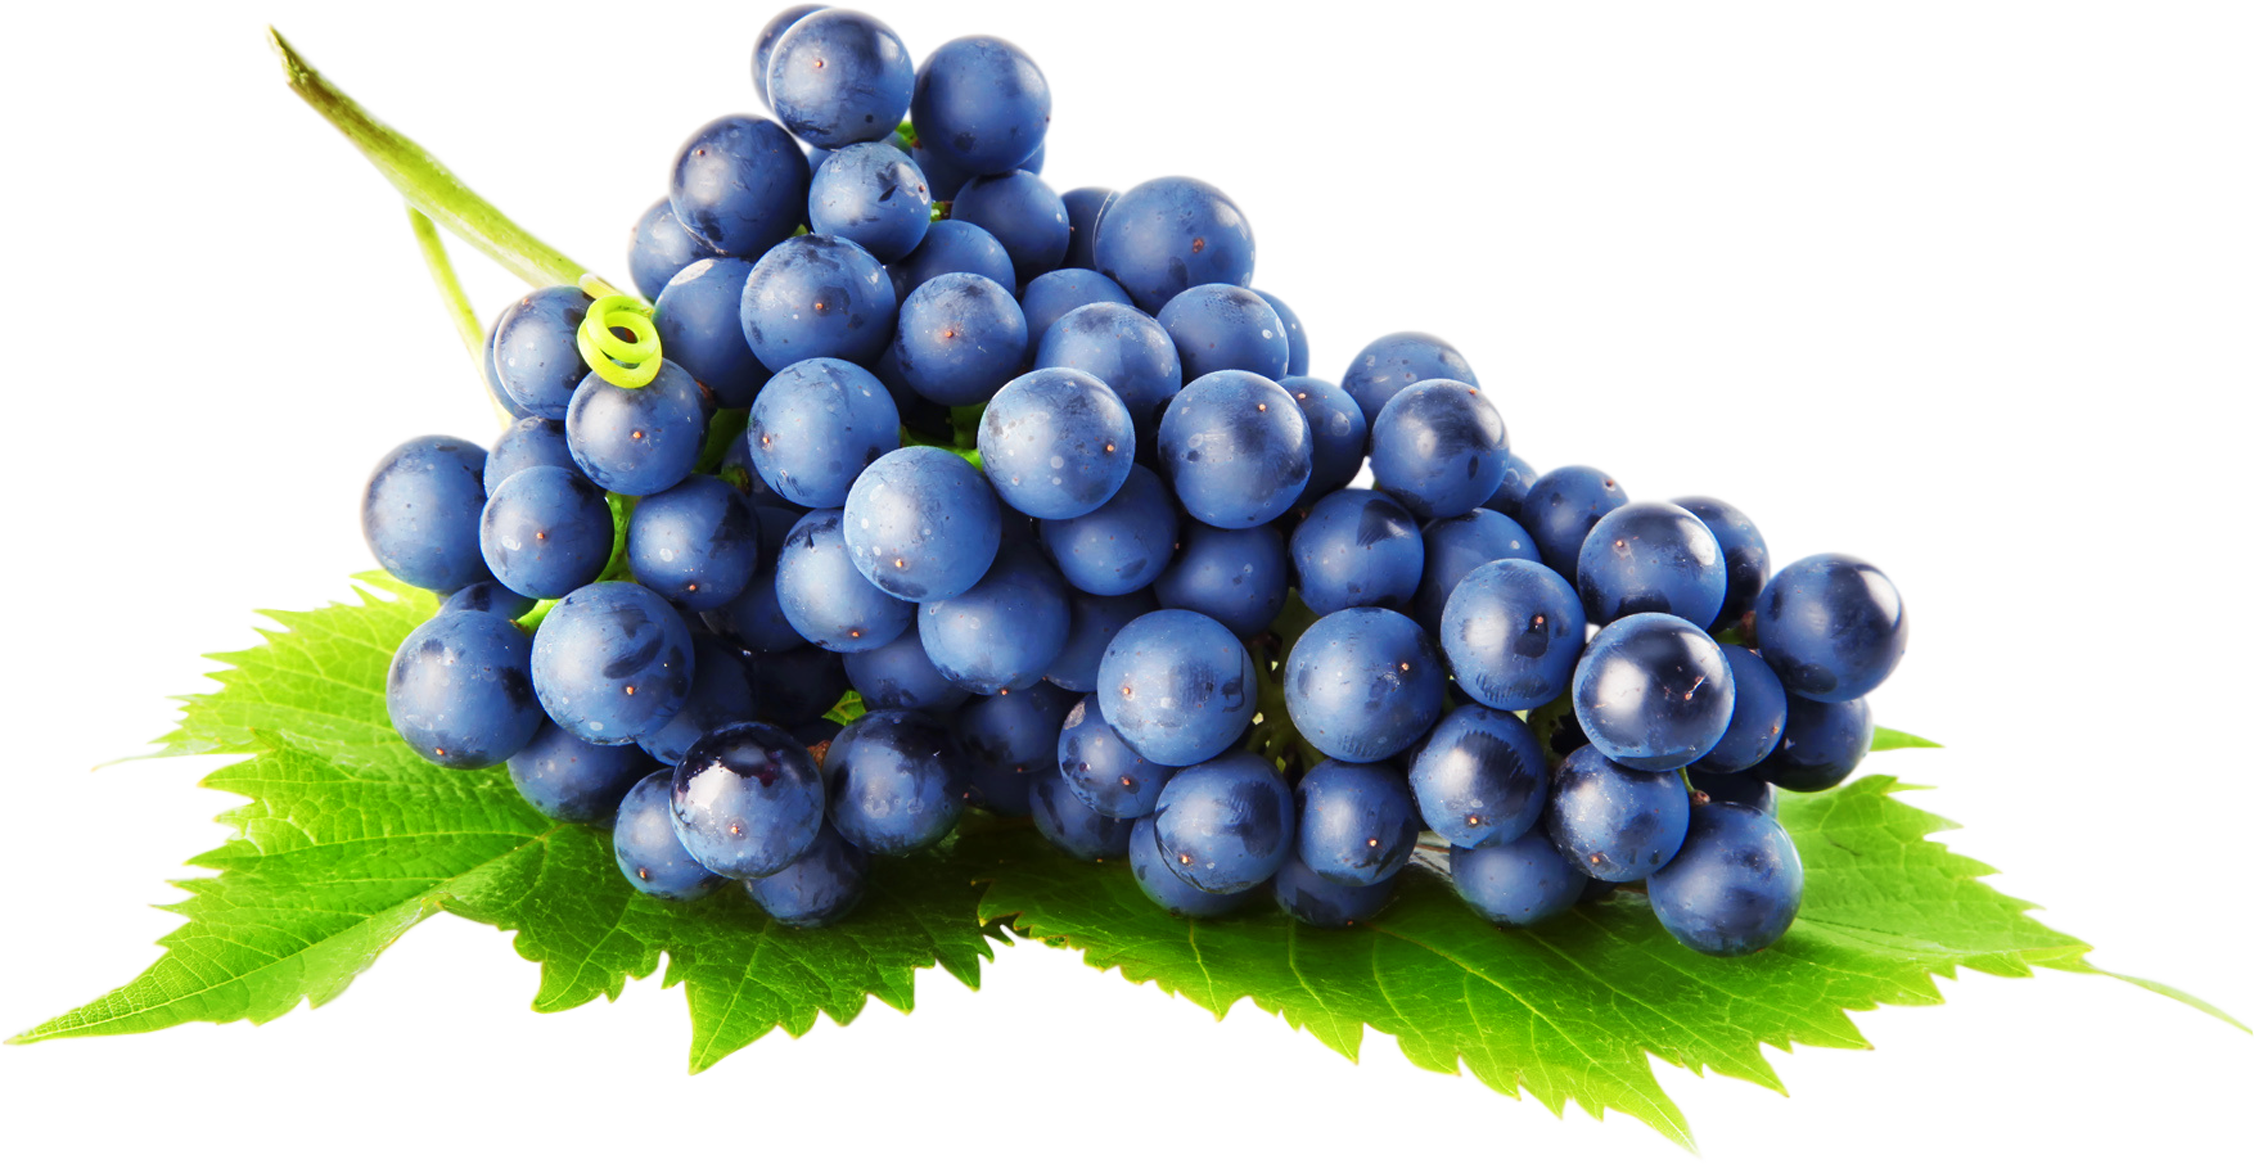 Grape forty seven isolated. Grapes clipart health food